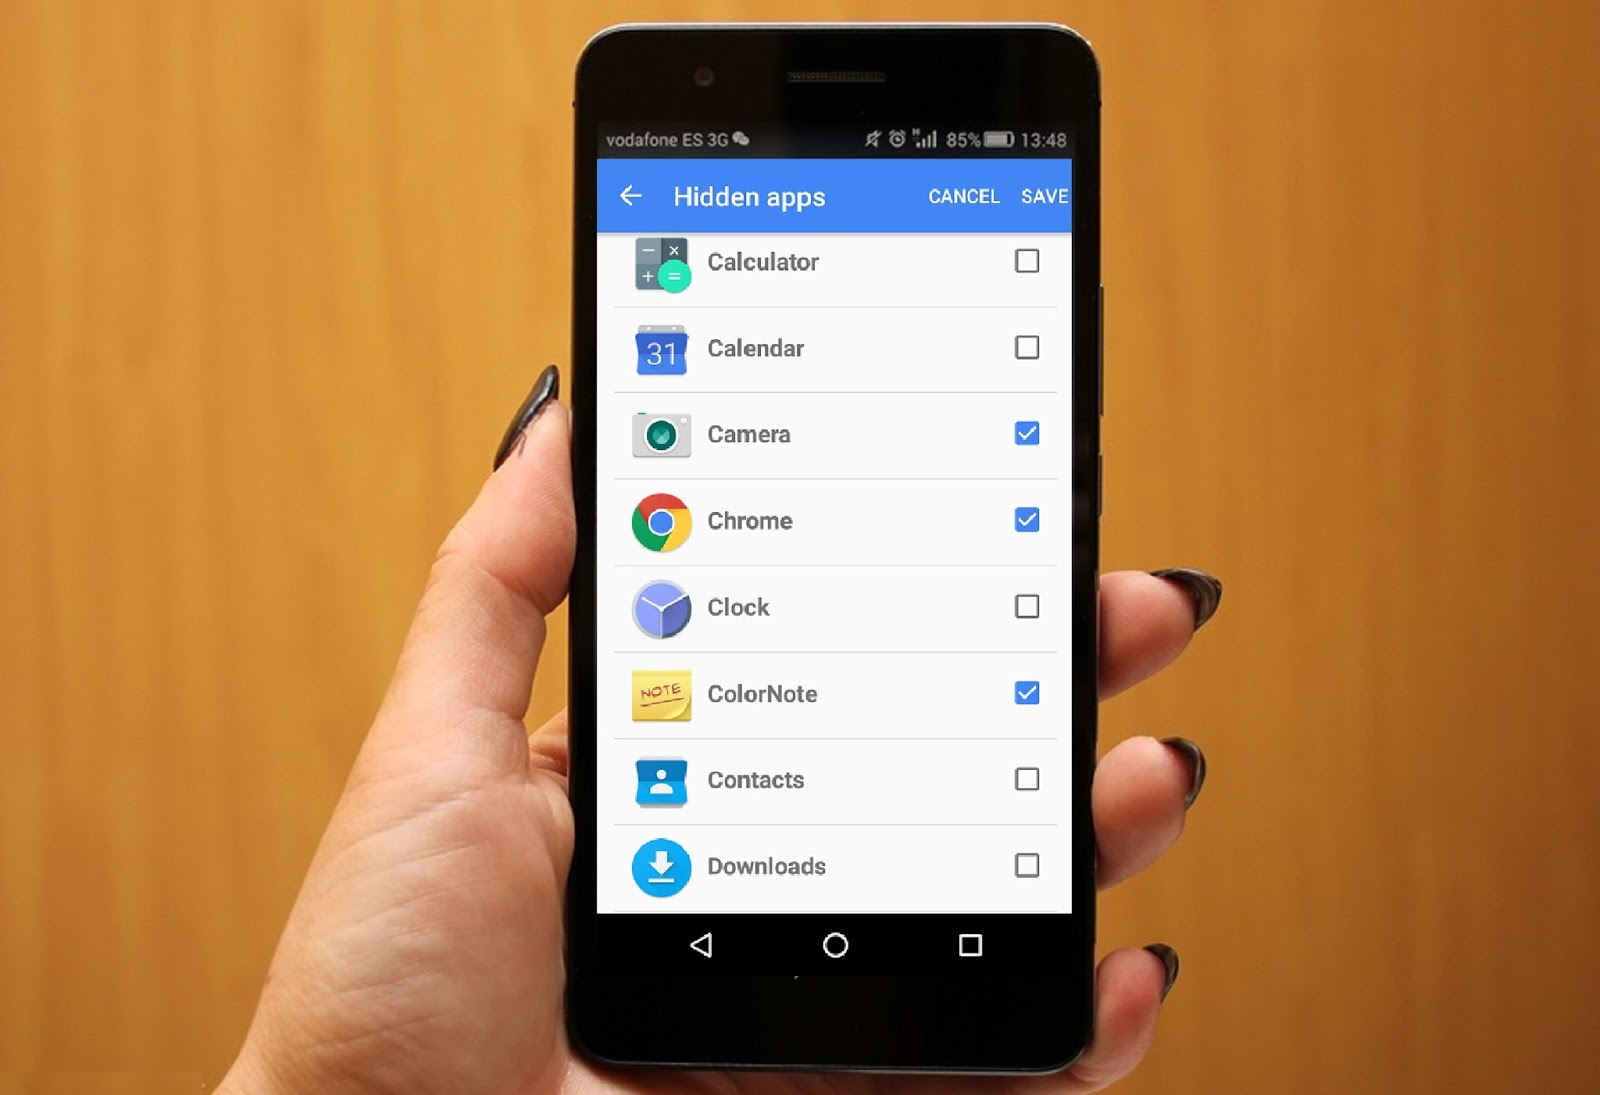 How to remove hidden apps on android